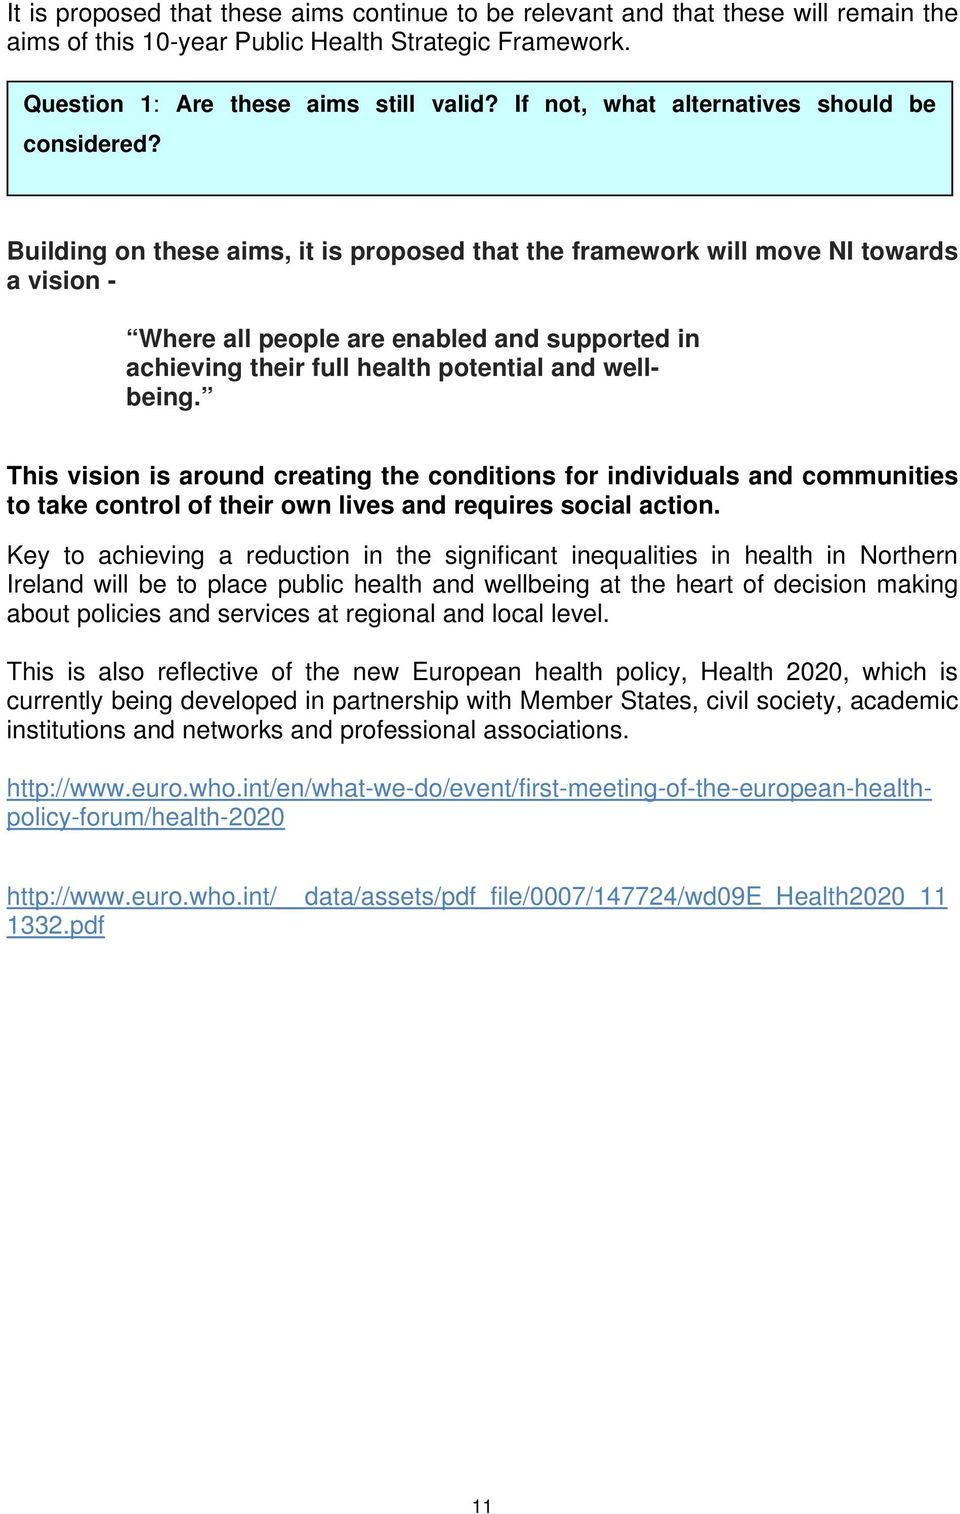 Building on these aims, it is proposed that the framework will move NI towards a vision - This vision is around creating the conditions for individuals and communities to take control of their own